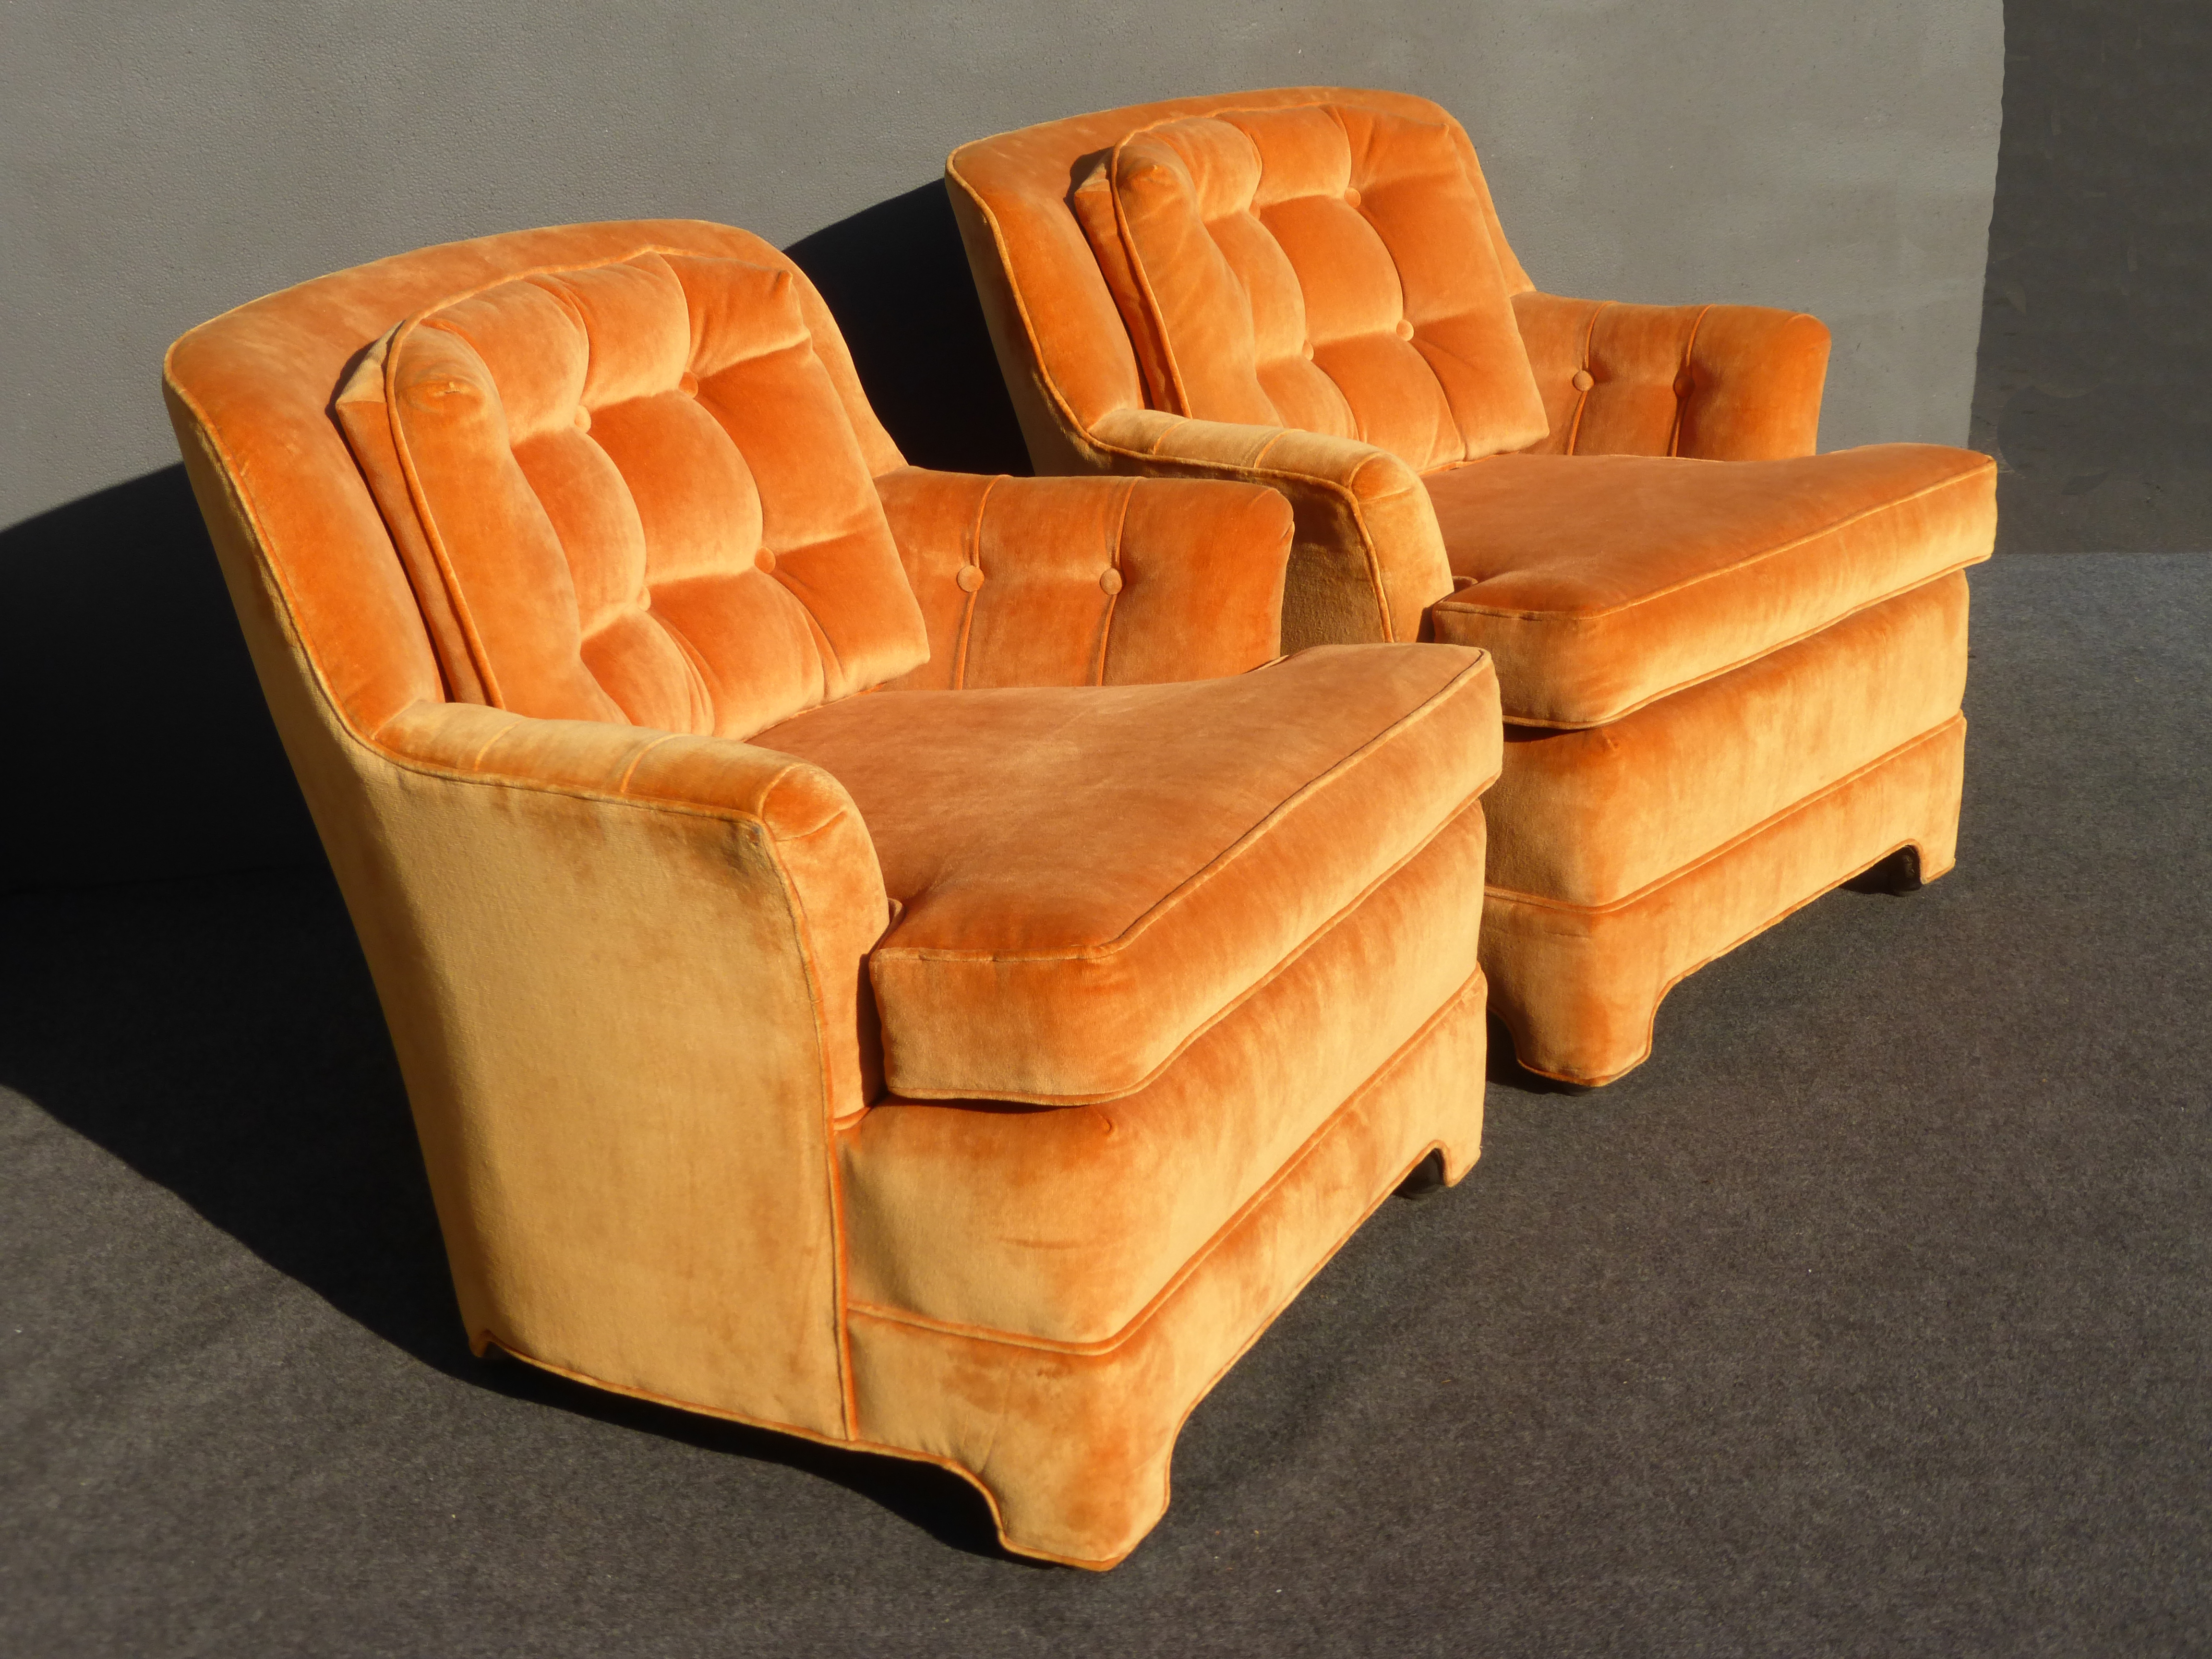 Mid Century Tufted Orange Velvet Accent Chairs   A Pair By Marge Carson    Image 4